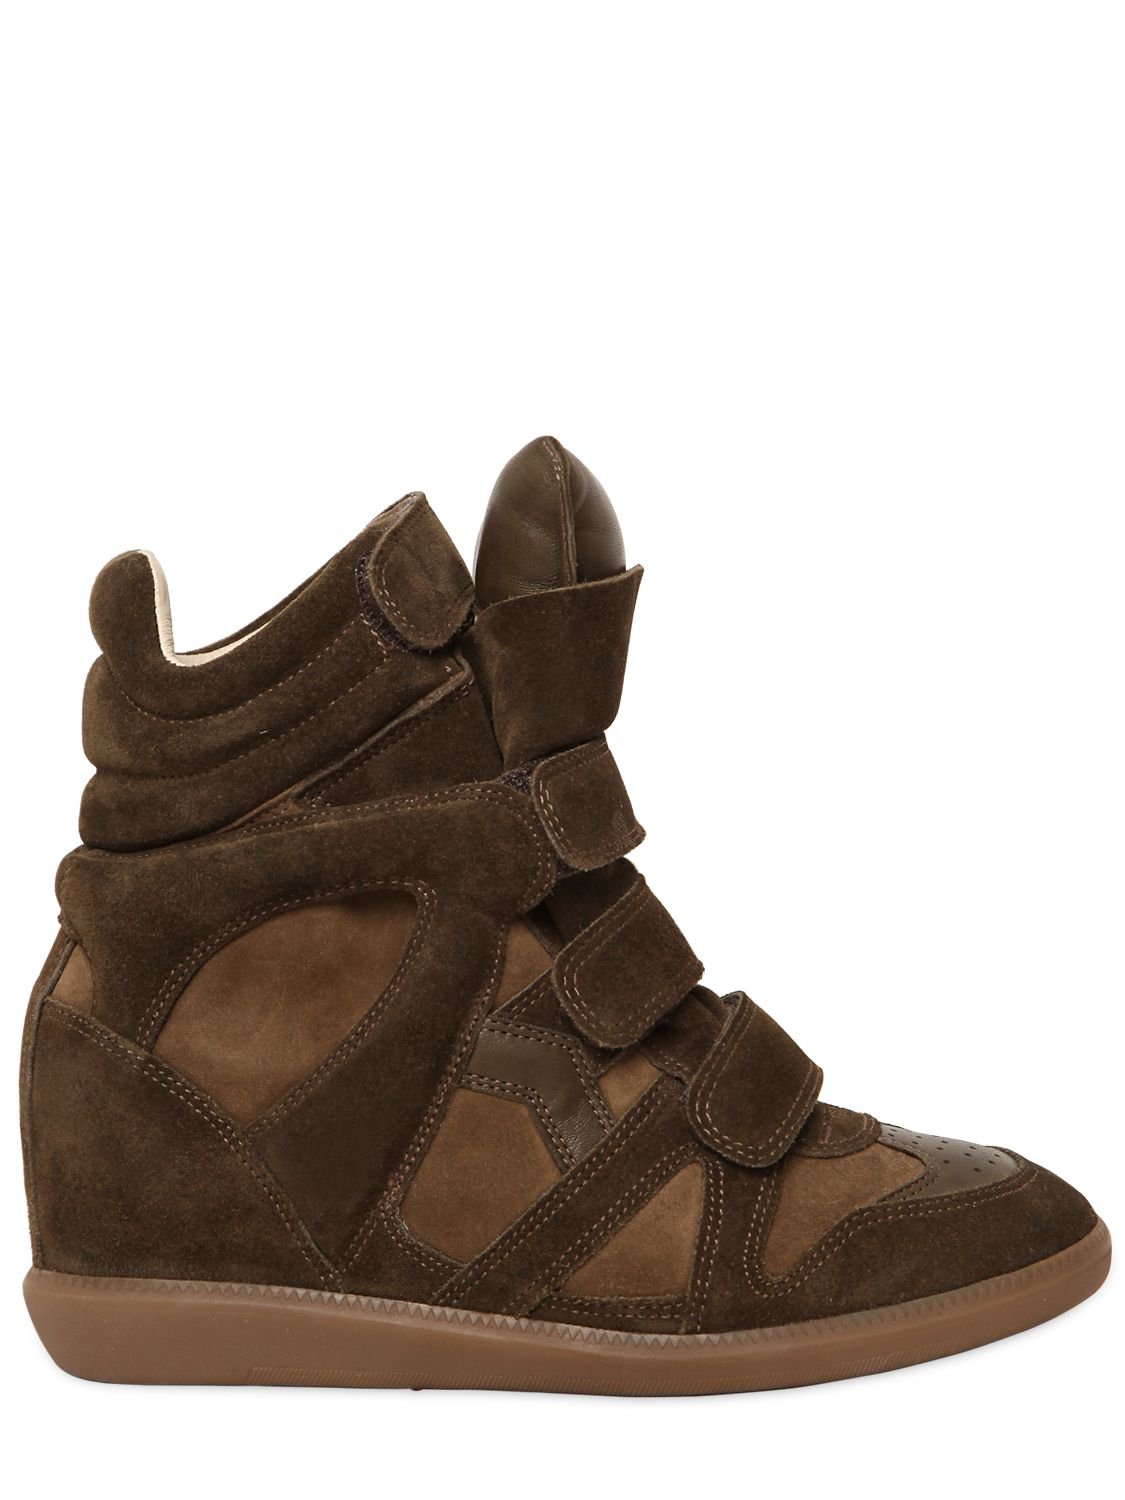 isabel marant toile bekett leather and suede concealed wedge sneakers in natural lyst. Black Bedroom Furniture Sets. Home Design Ideas